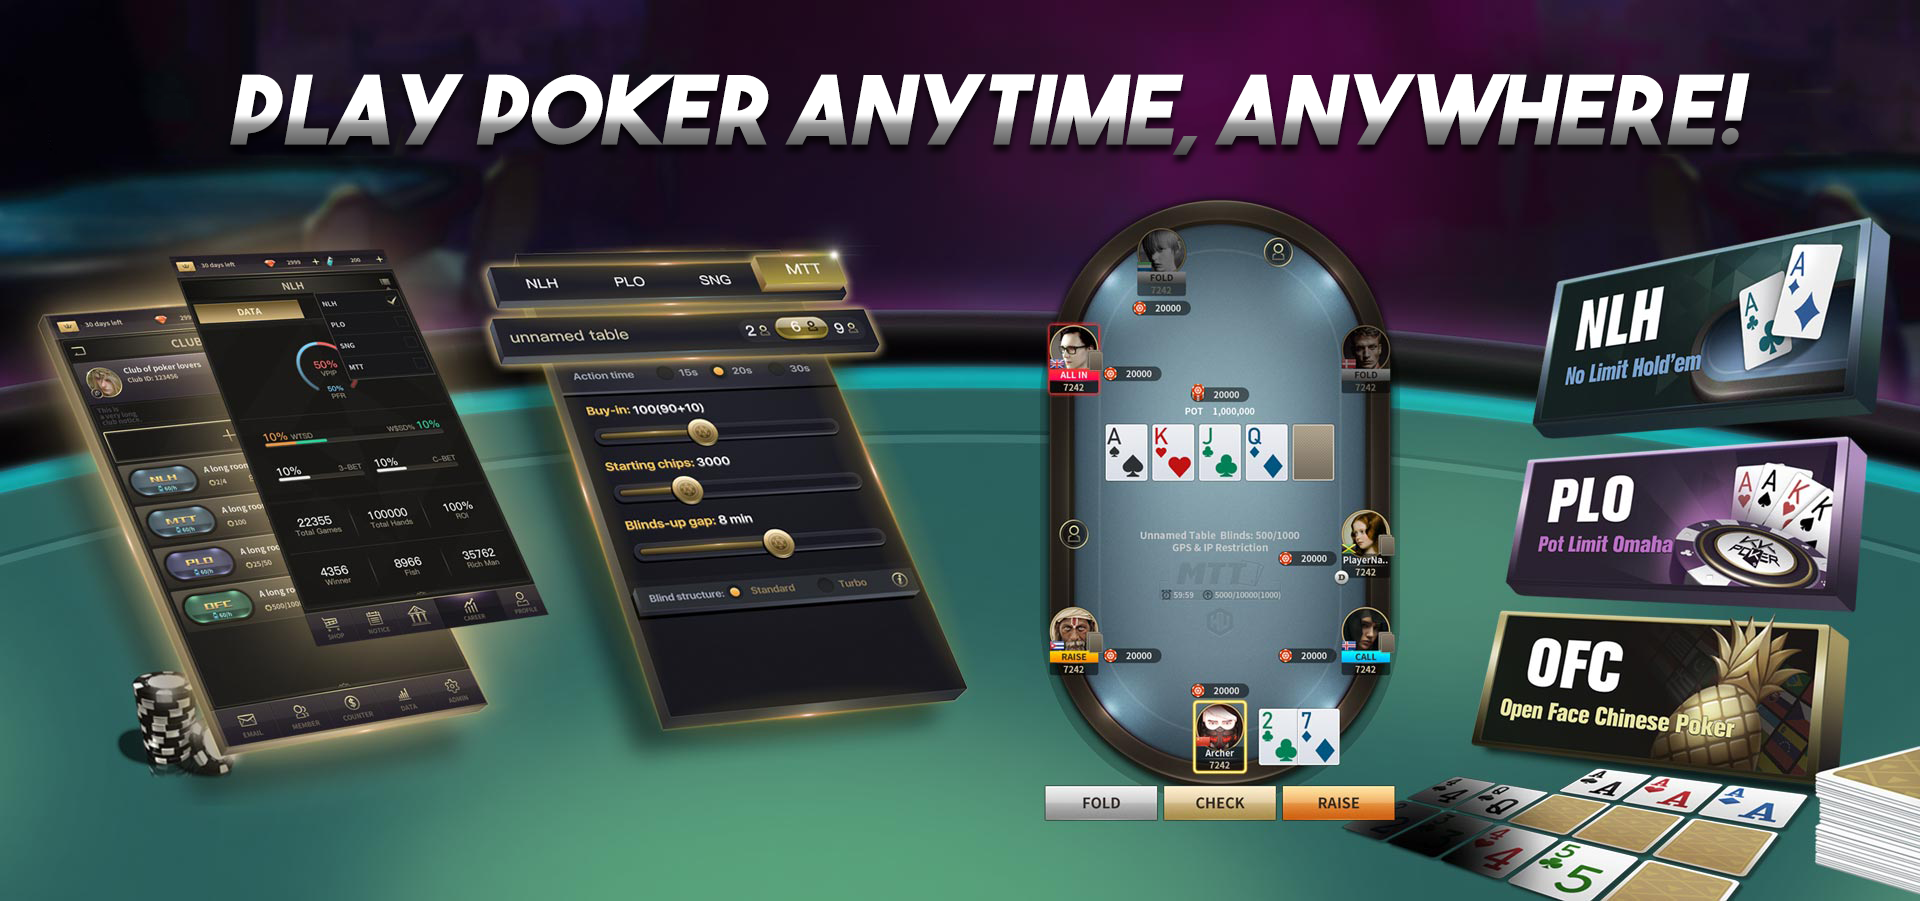 Poker for everyone